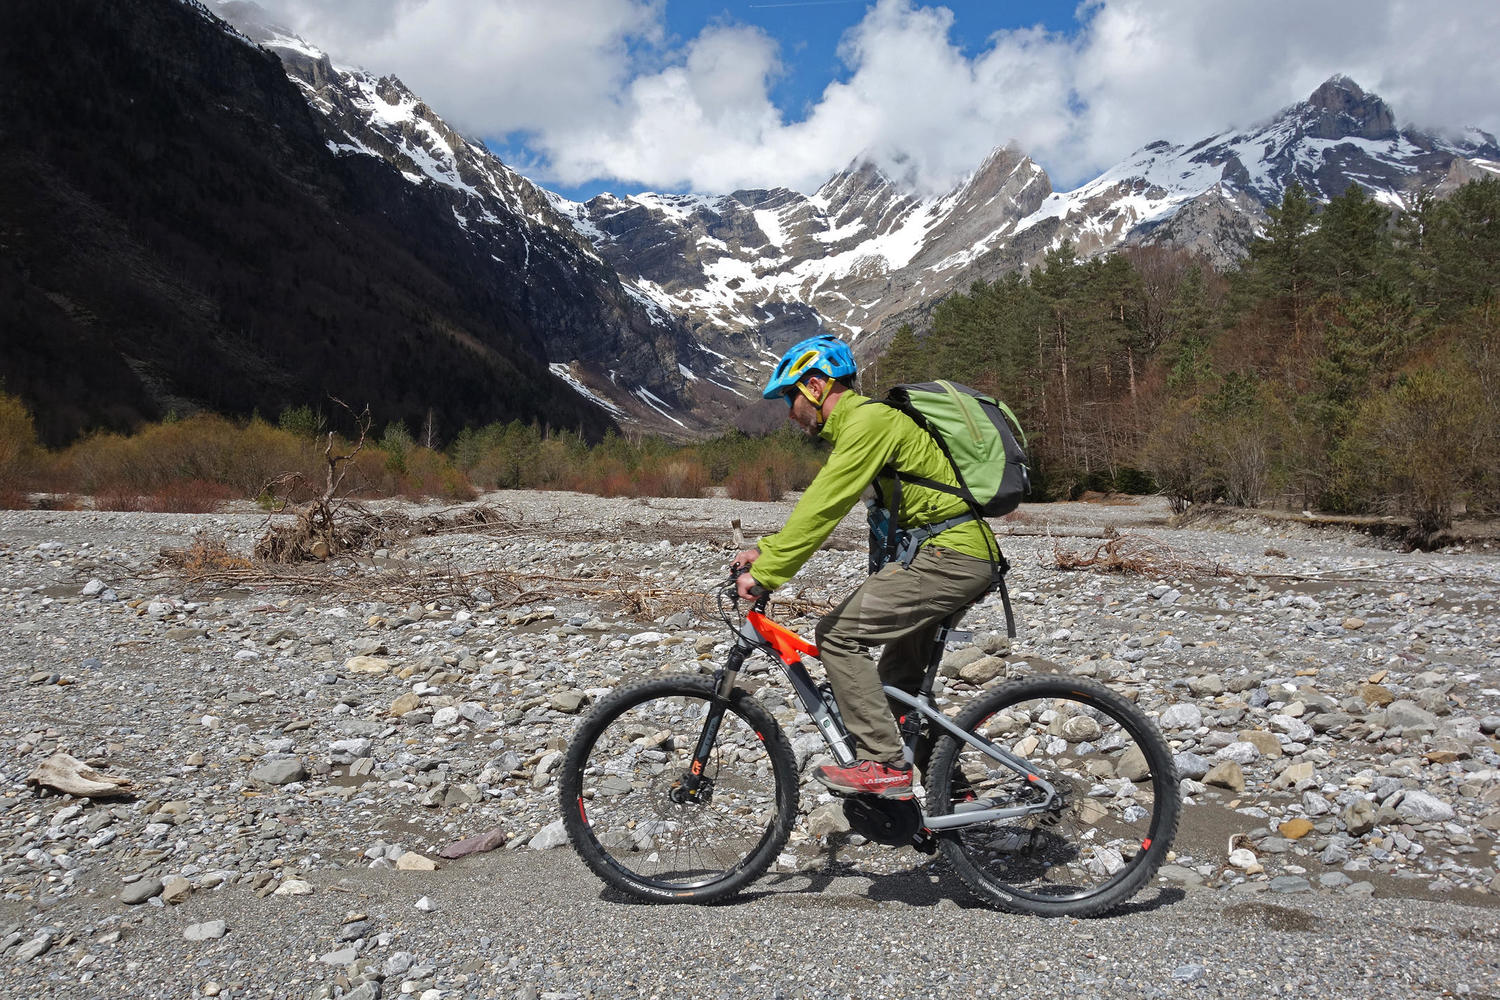 Ebike riding under the high peaks of the Pyrenees